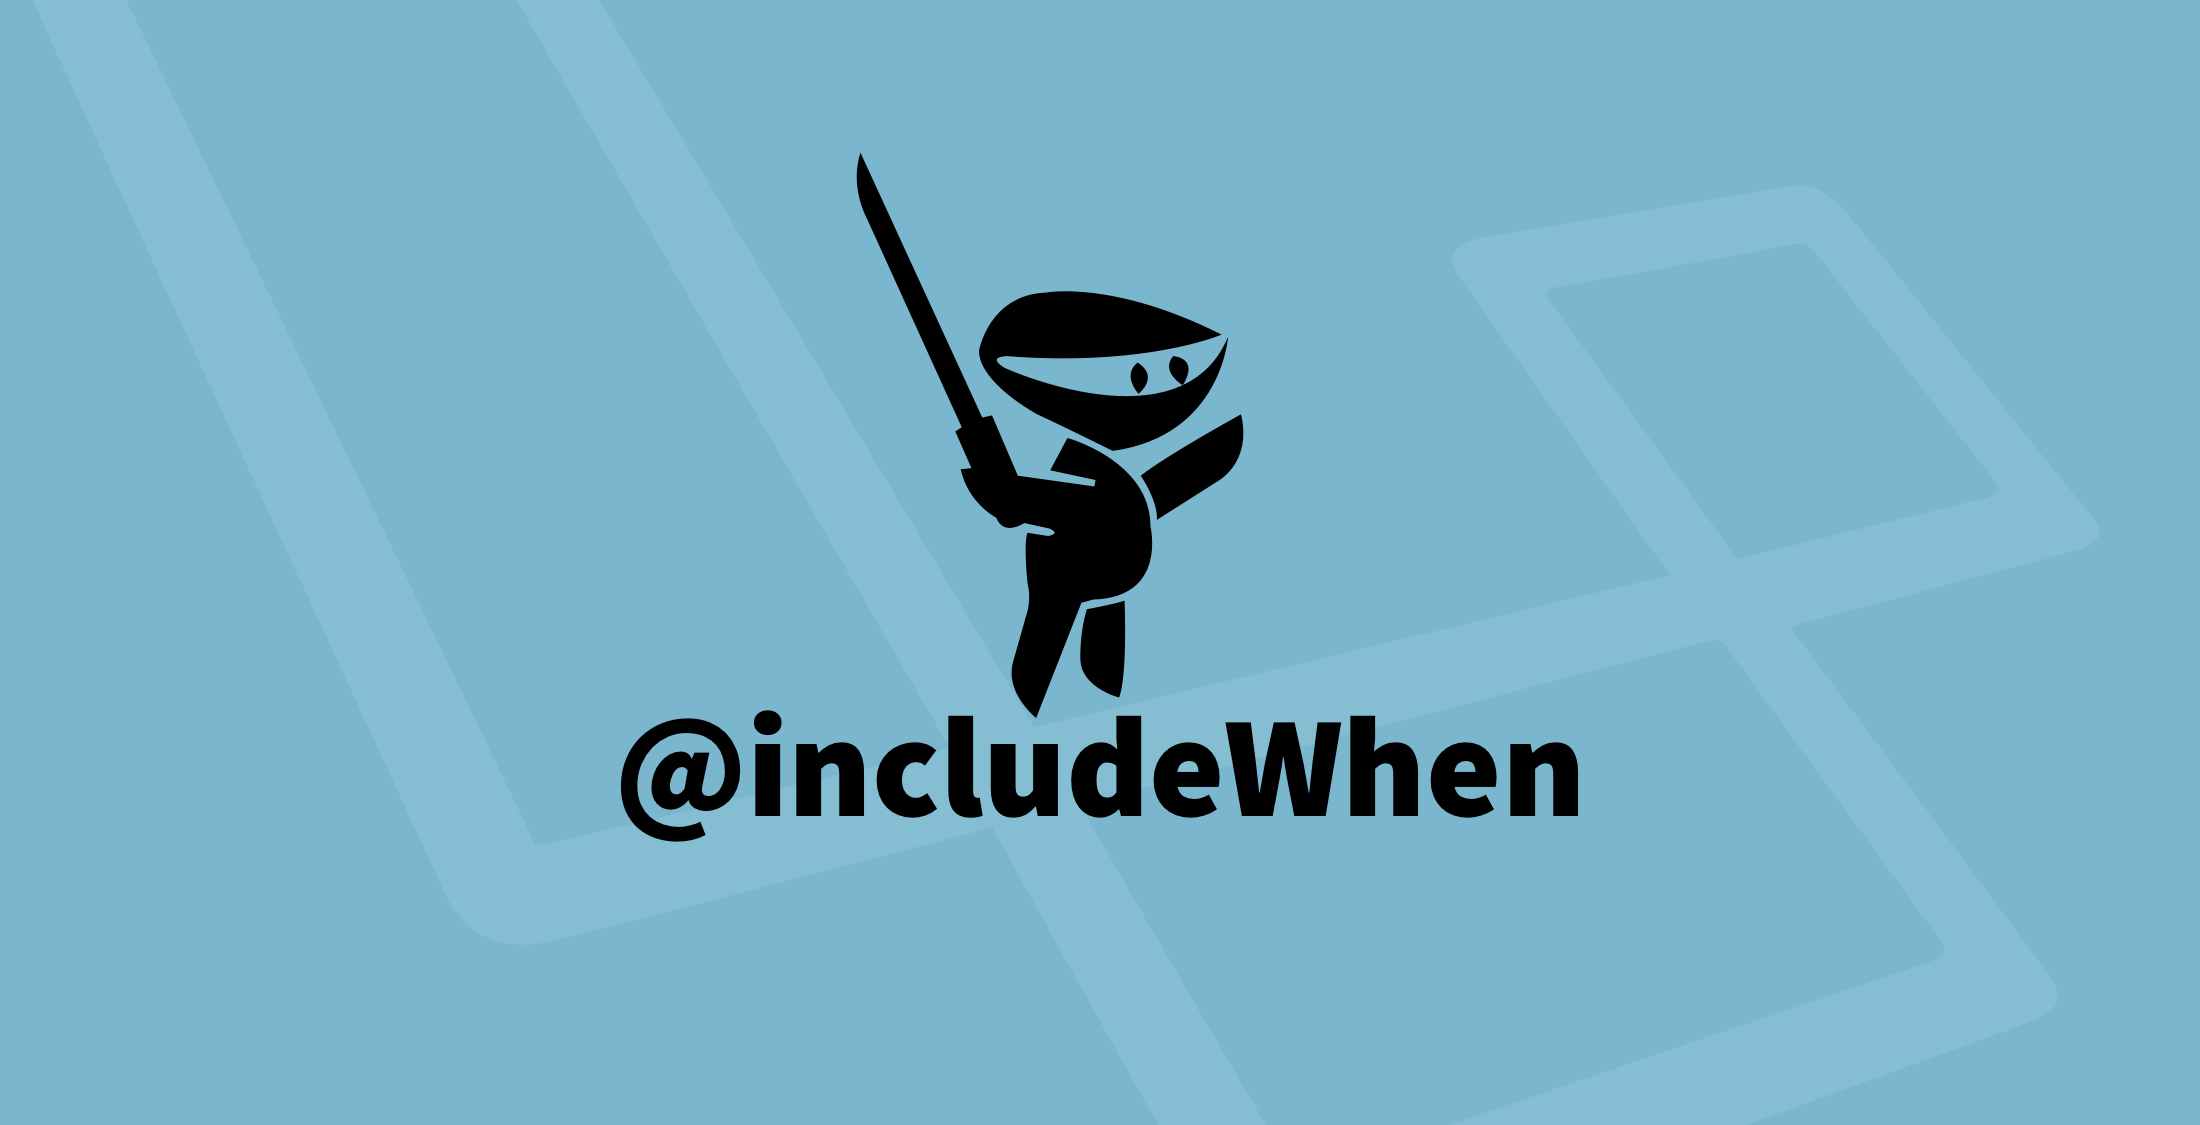 include-when.png